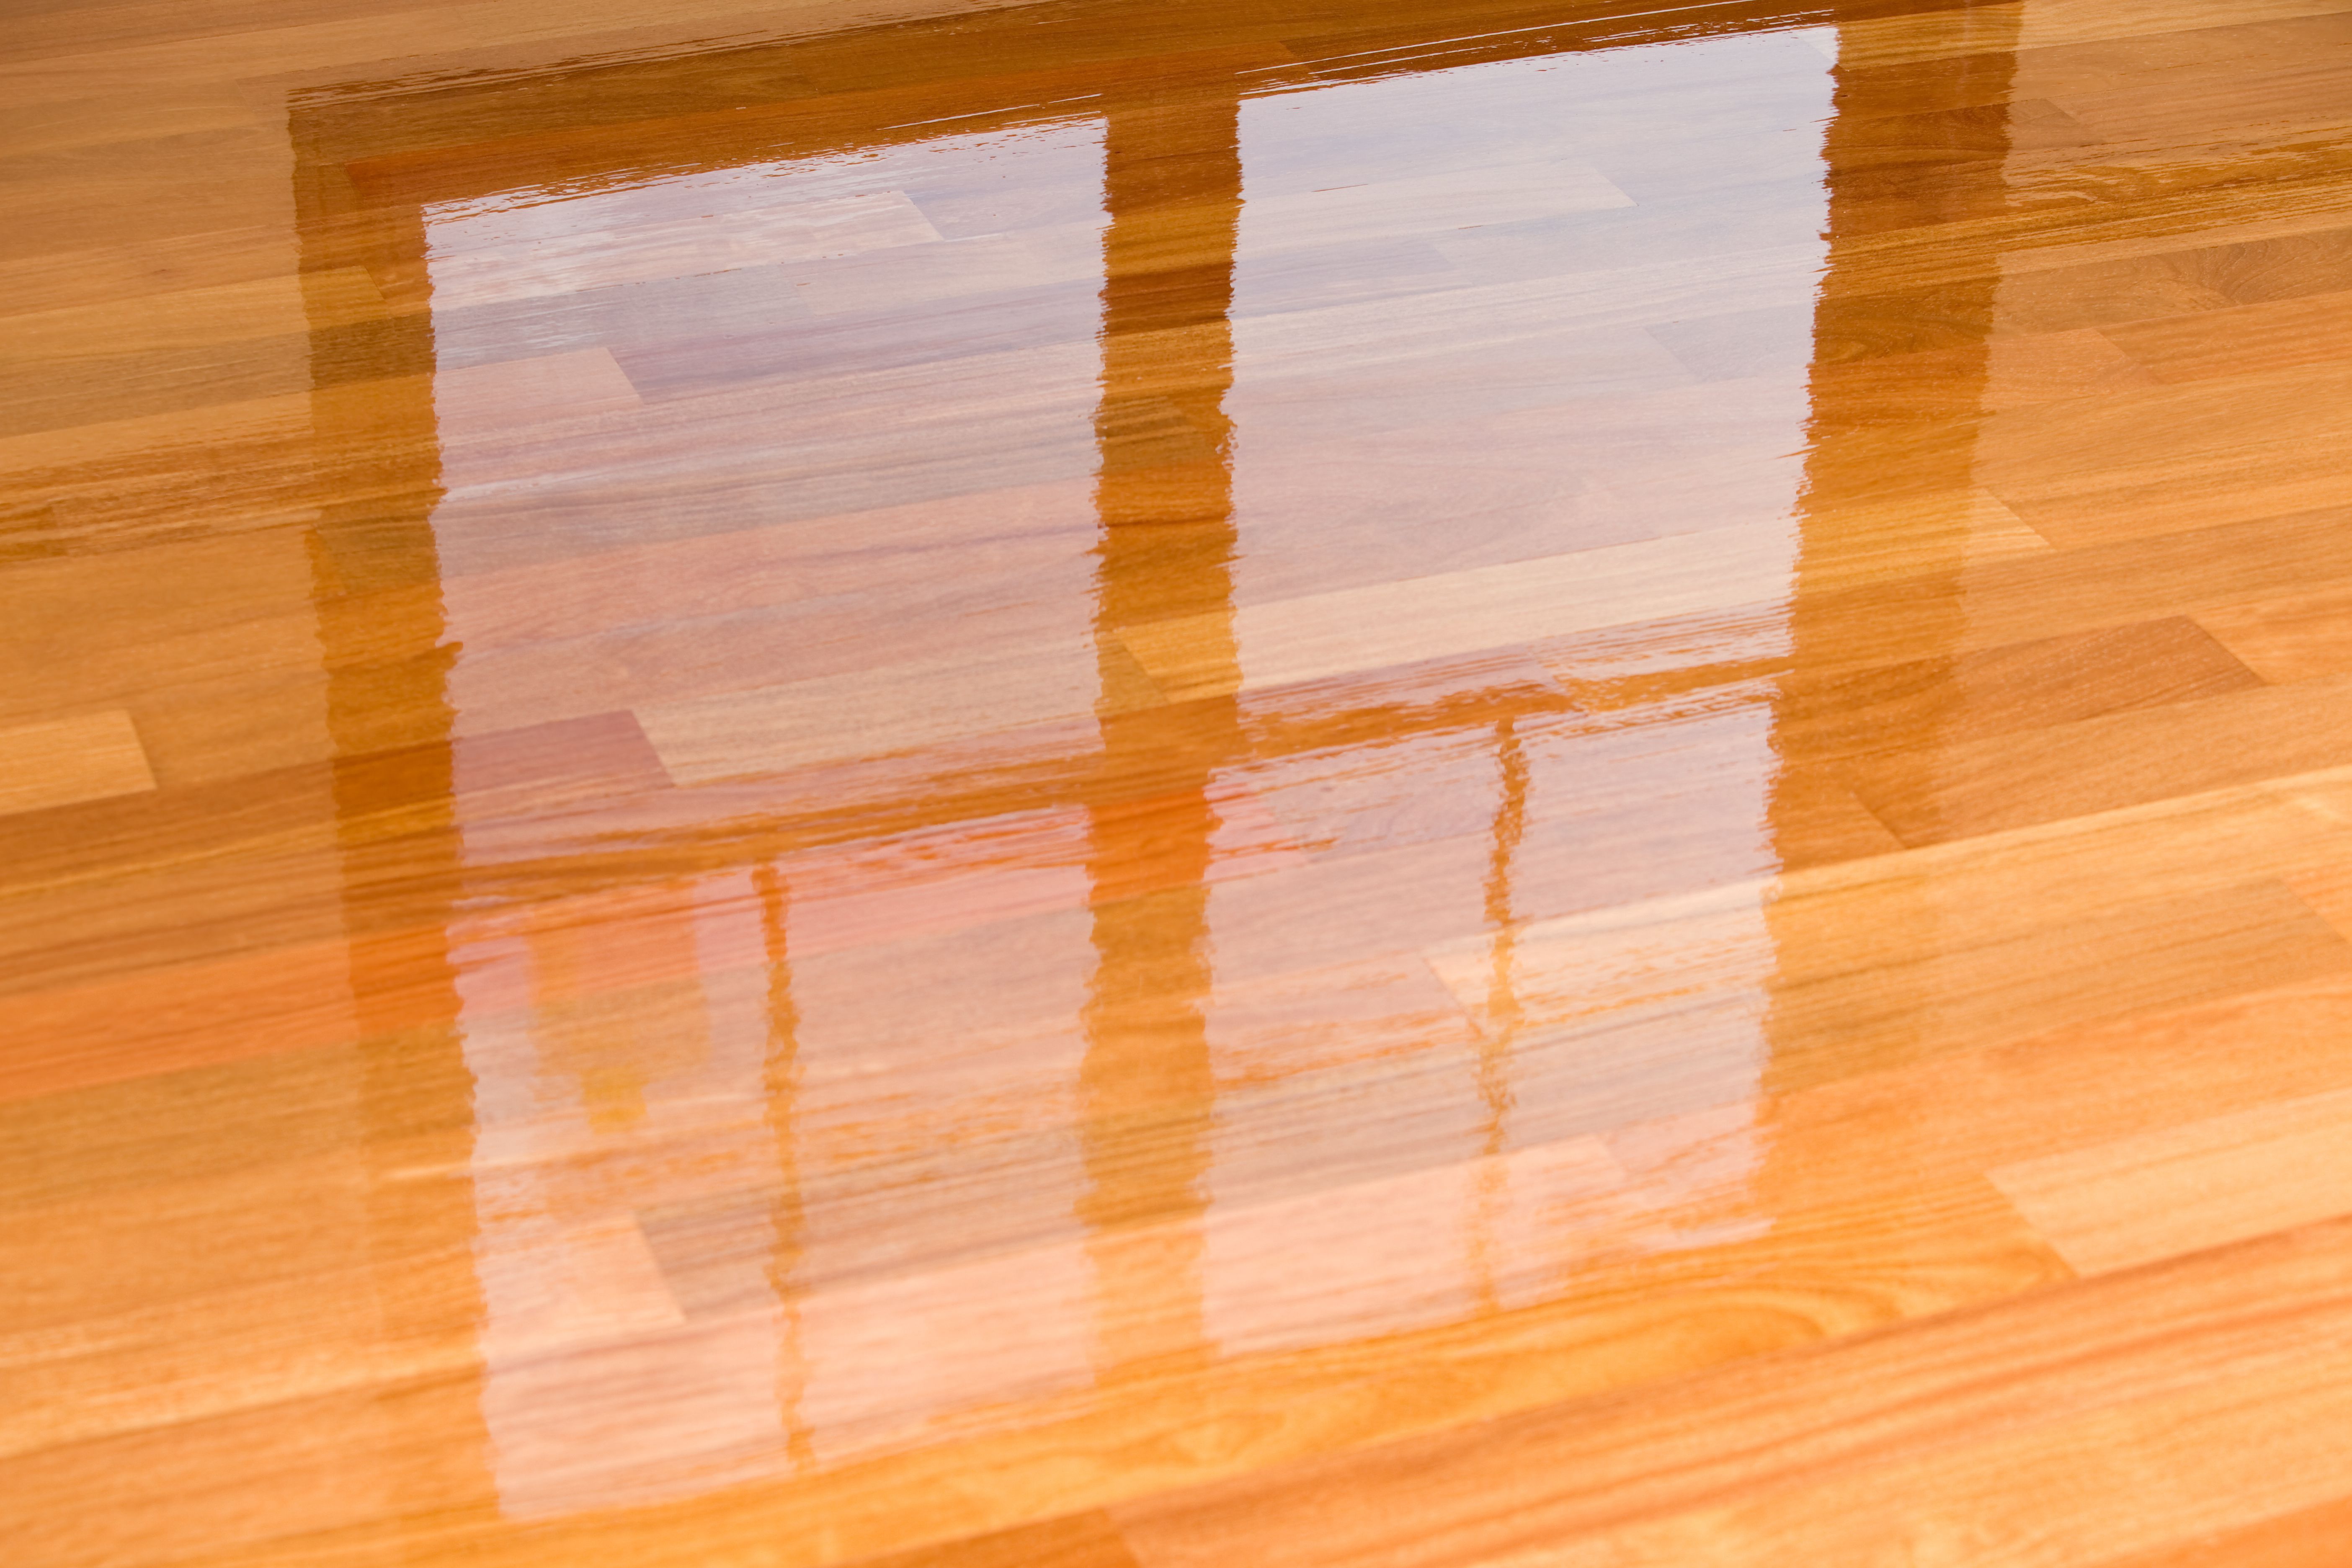 is laminate flooring better than hardwood of guide to laminate flooring water and damage repair in wet polyurethane on new hardwood floor with window reflection 183846705 582e34da3df78c6f6a403968